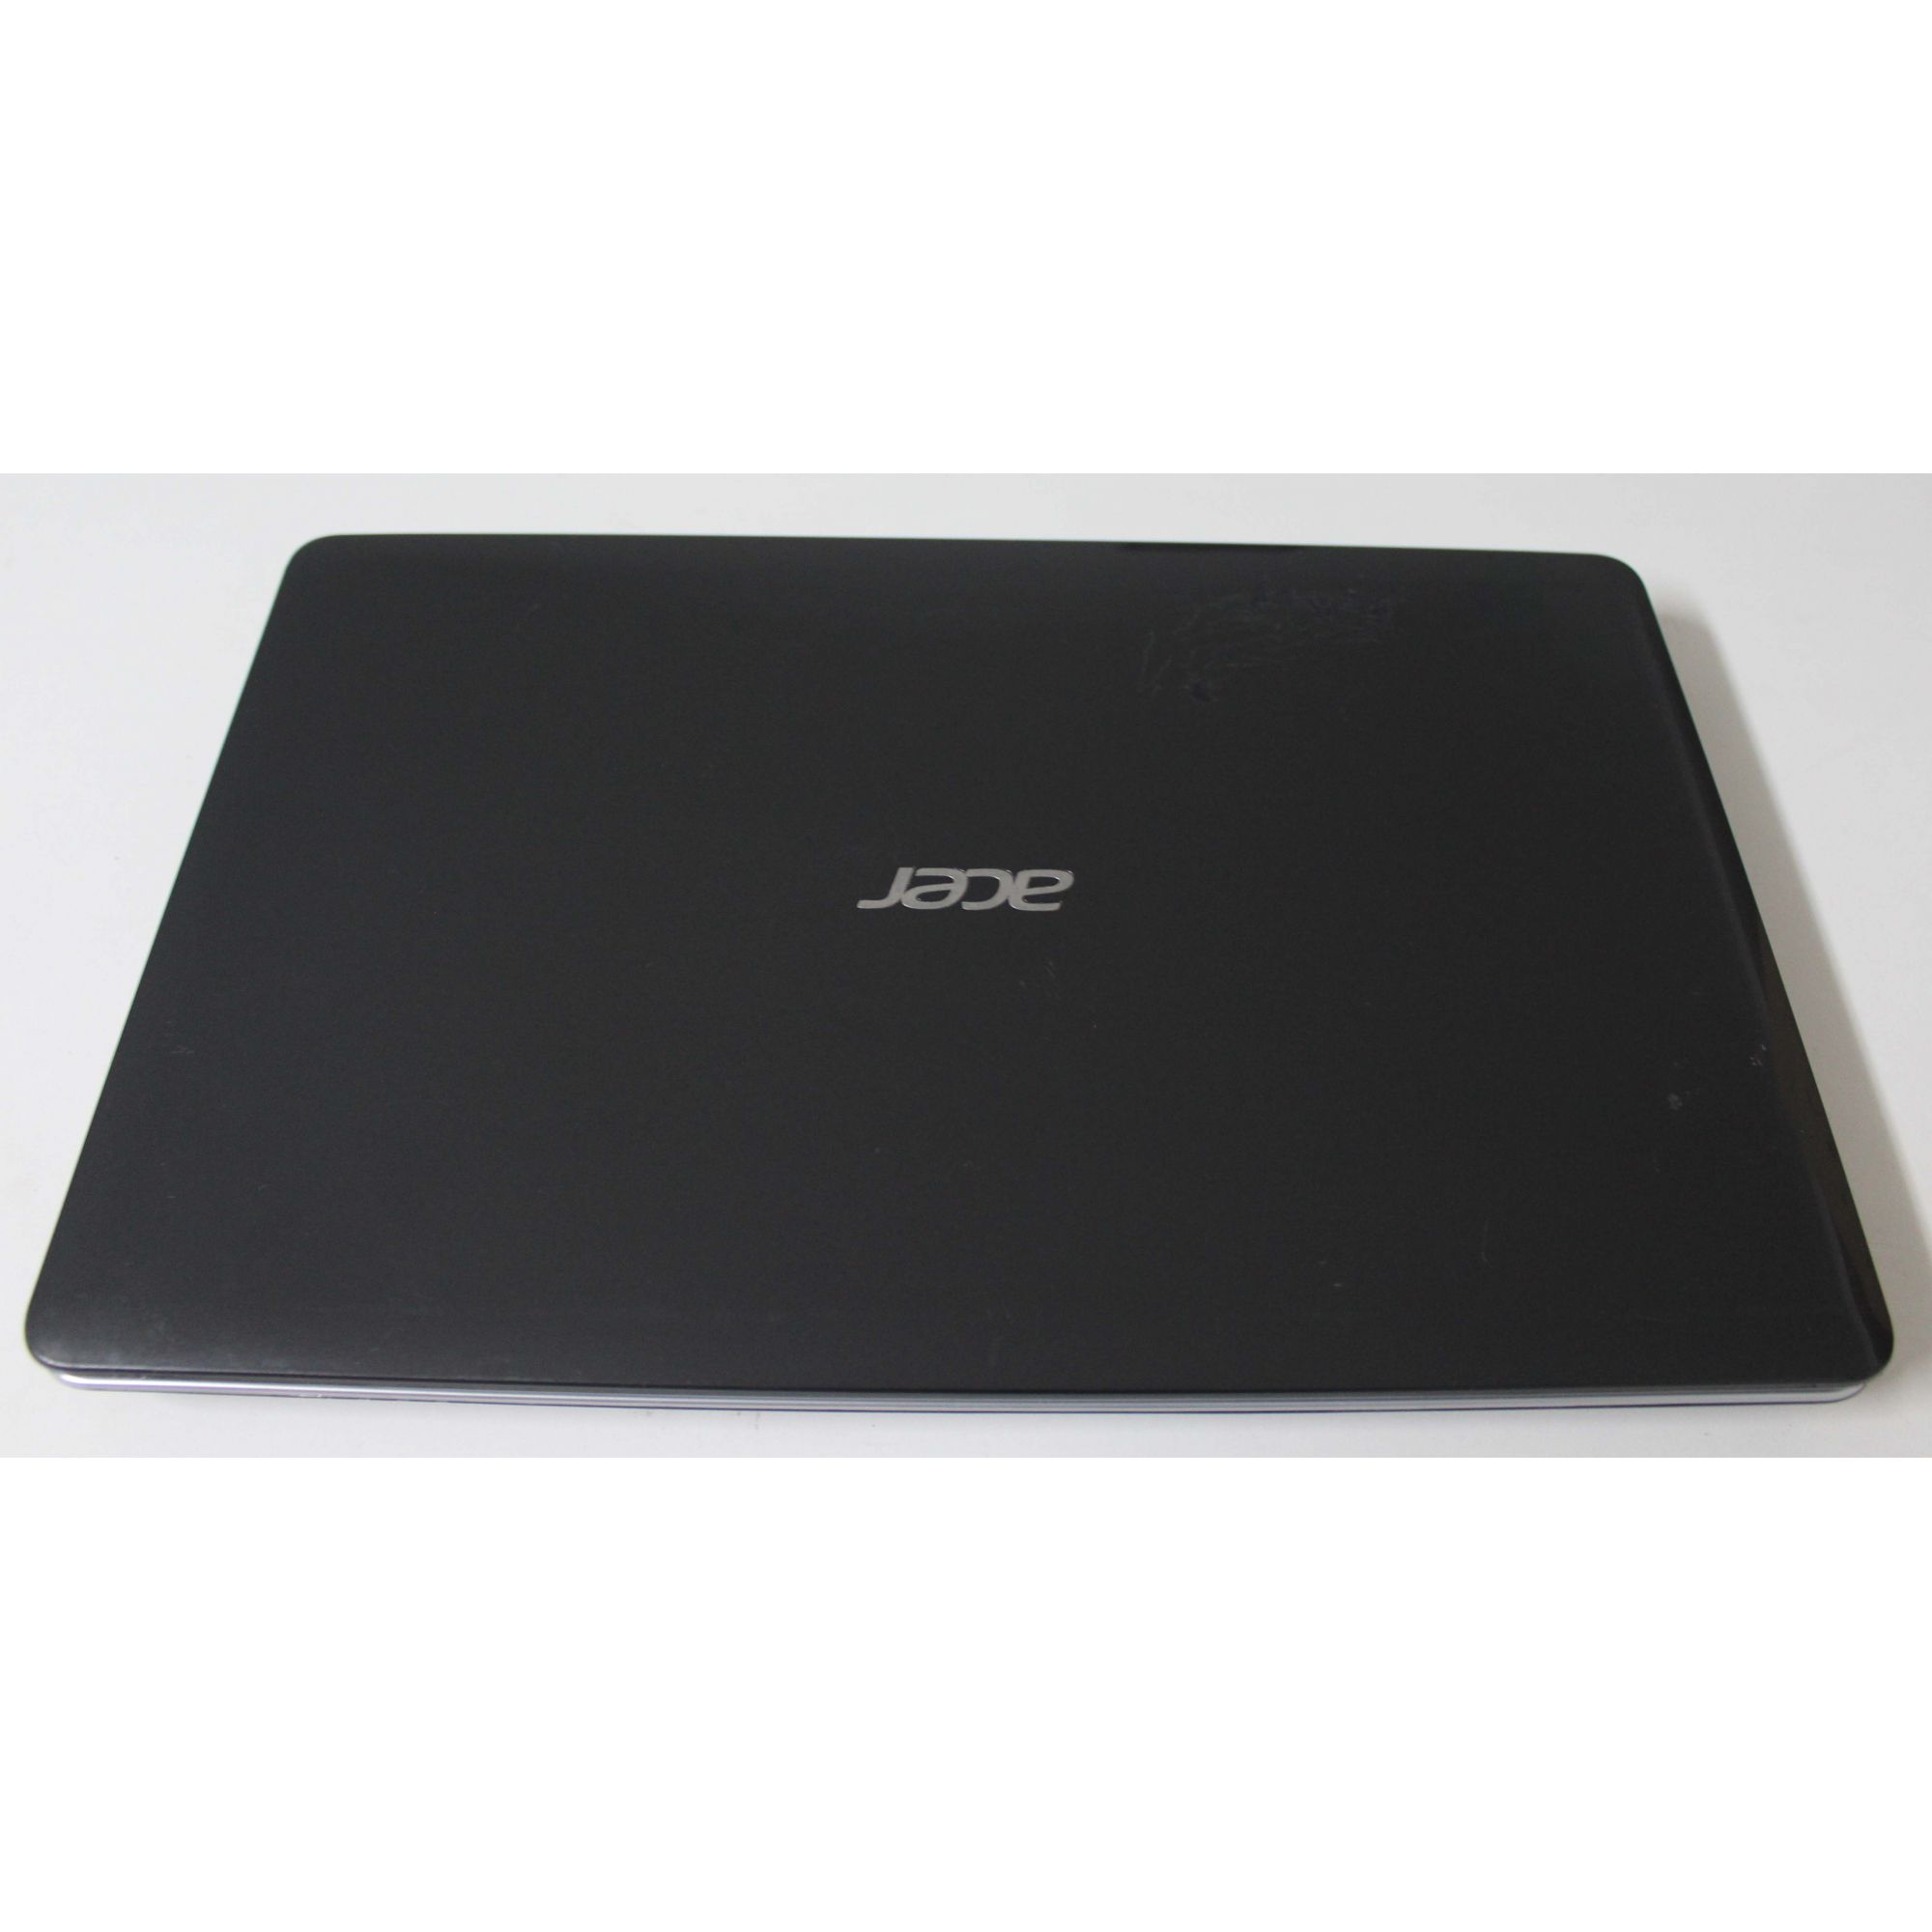 Notebook Acer Aspire E1-571-6854 Intel Core i5 2.60GHz 4GB HD-500GB - Alphanumérico